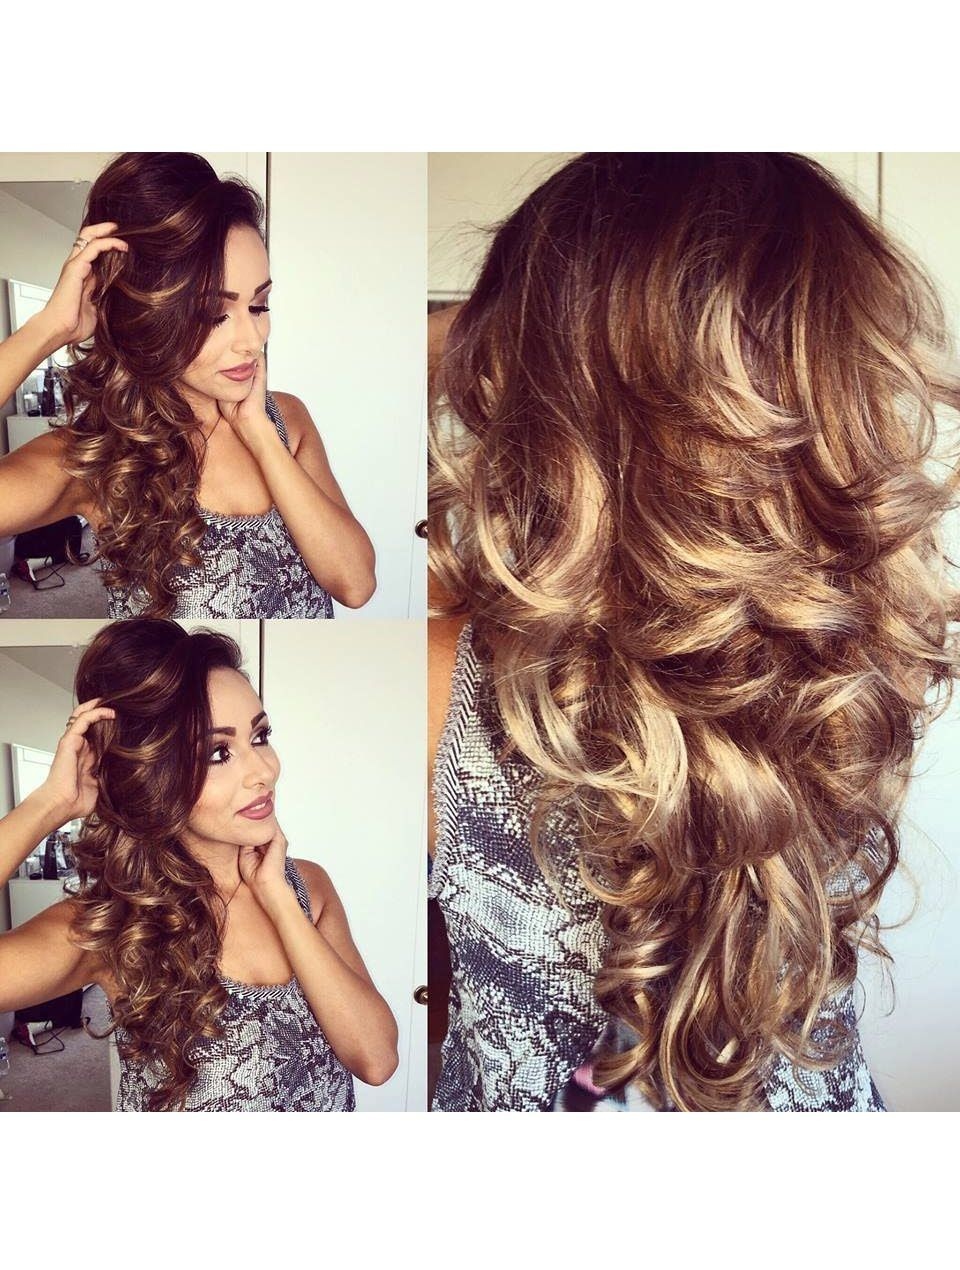 Easy And Bouncy Voluminous Curls Using Hot Rollers Hair Tutorial Curls For Long Hair Hot Rollers Hair Hair Styles